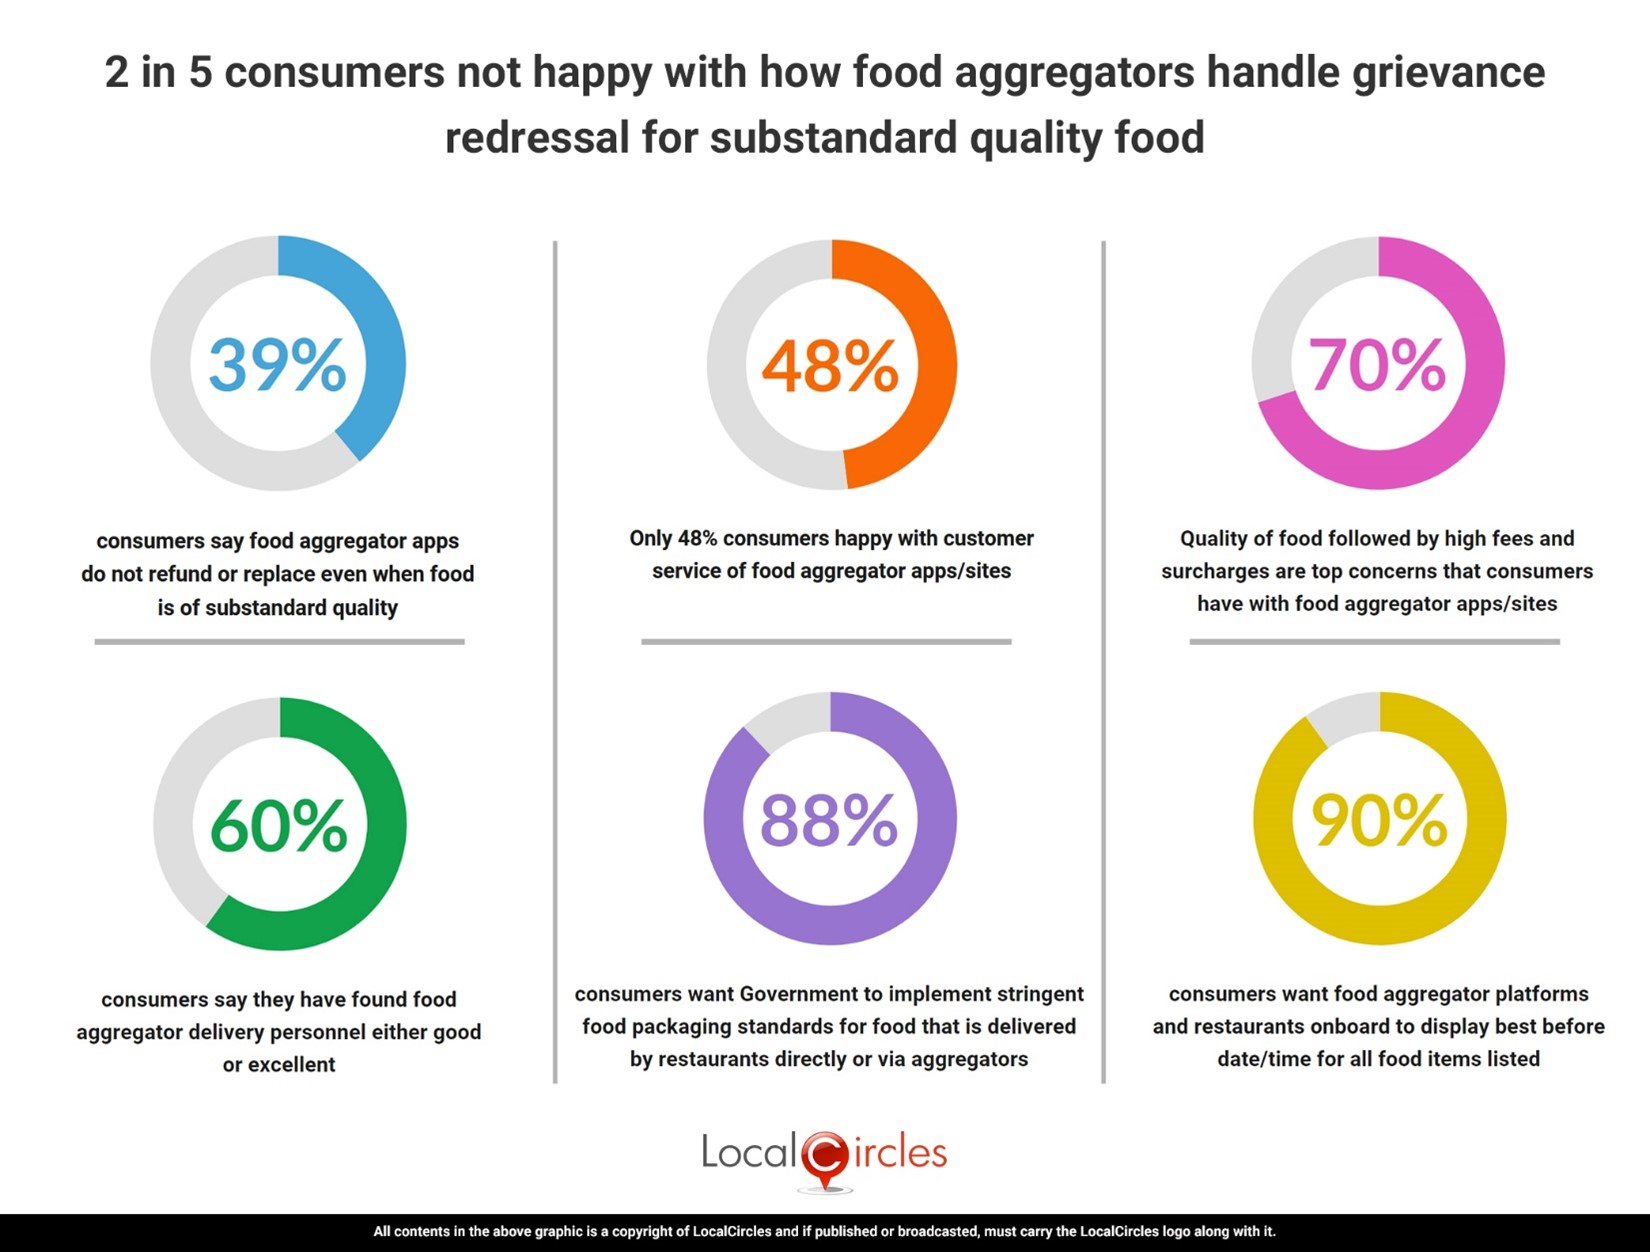 2 in 5 consumers not happy with how food aggregators handle grievance redressal even for substandard quality food